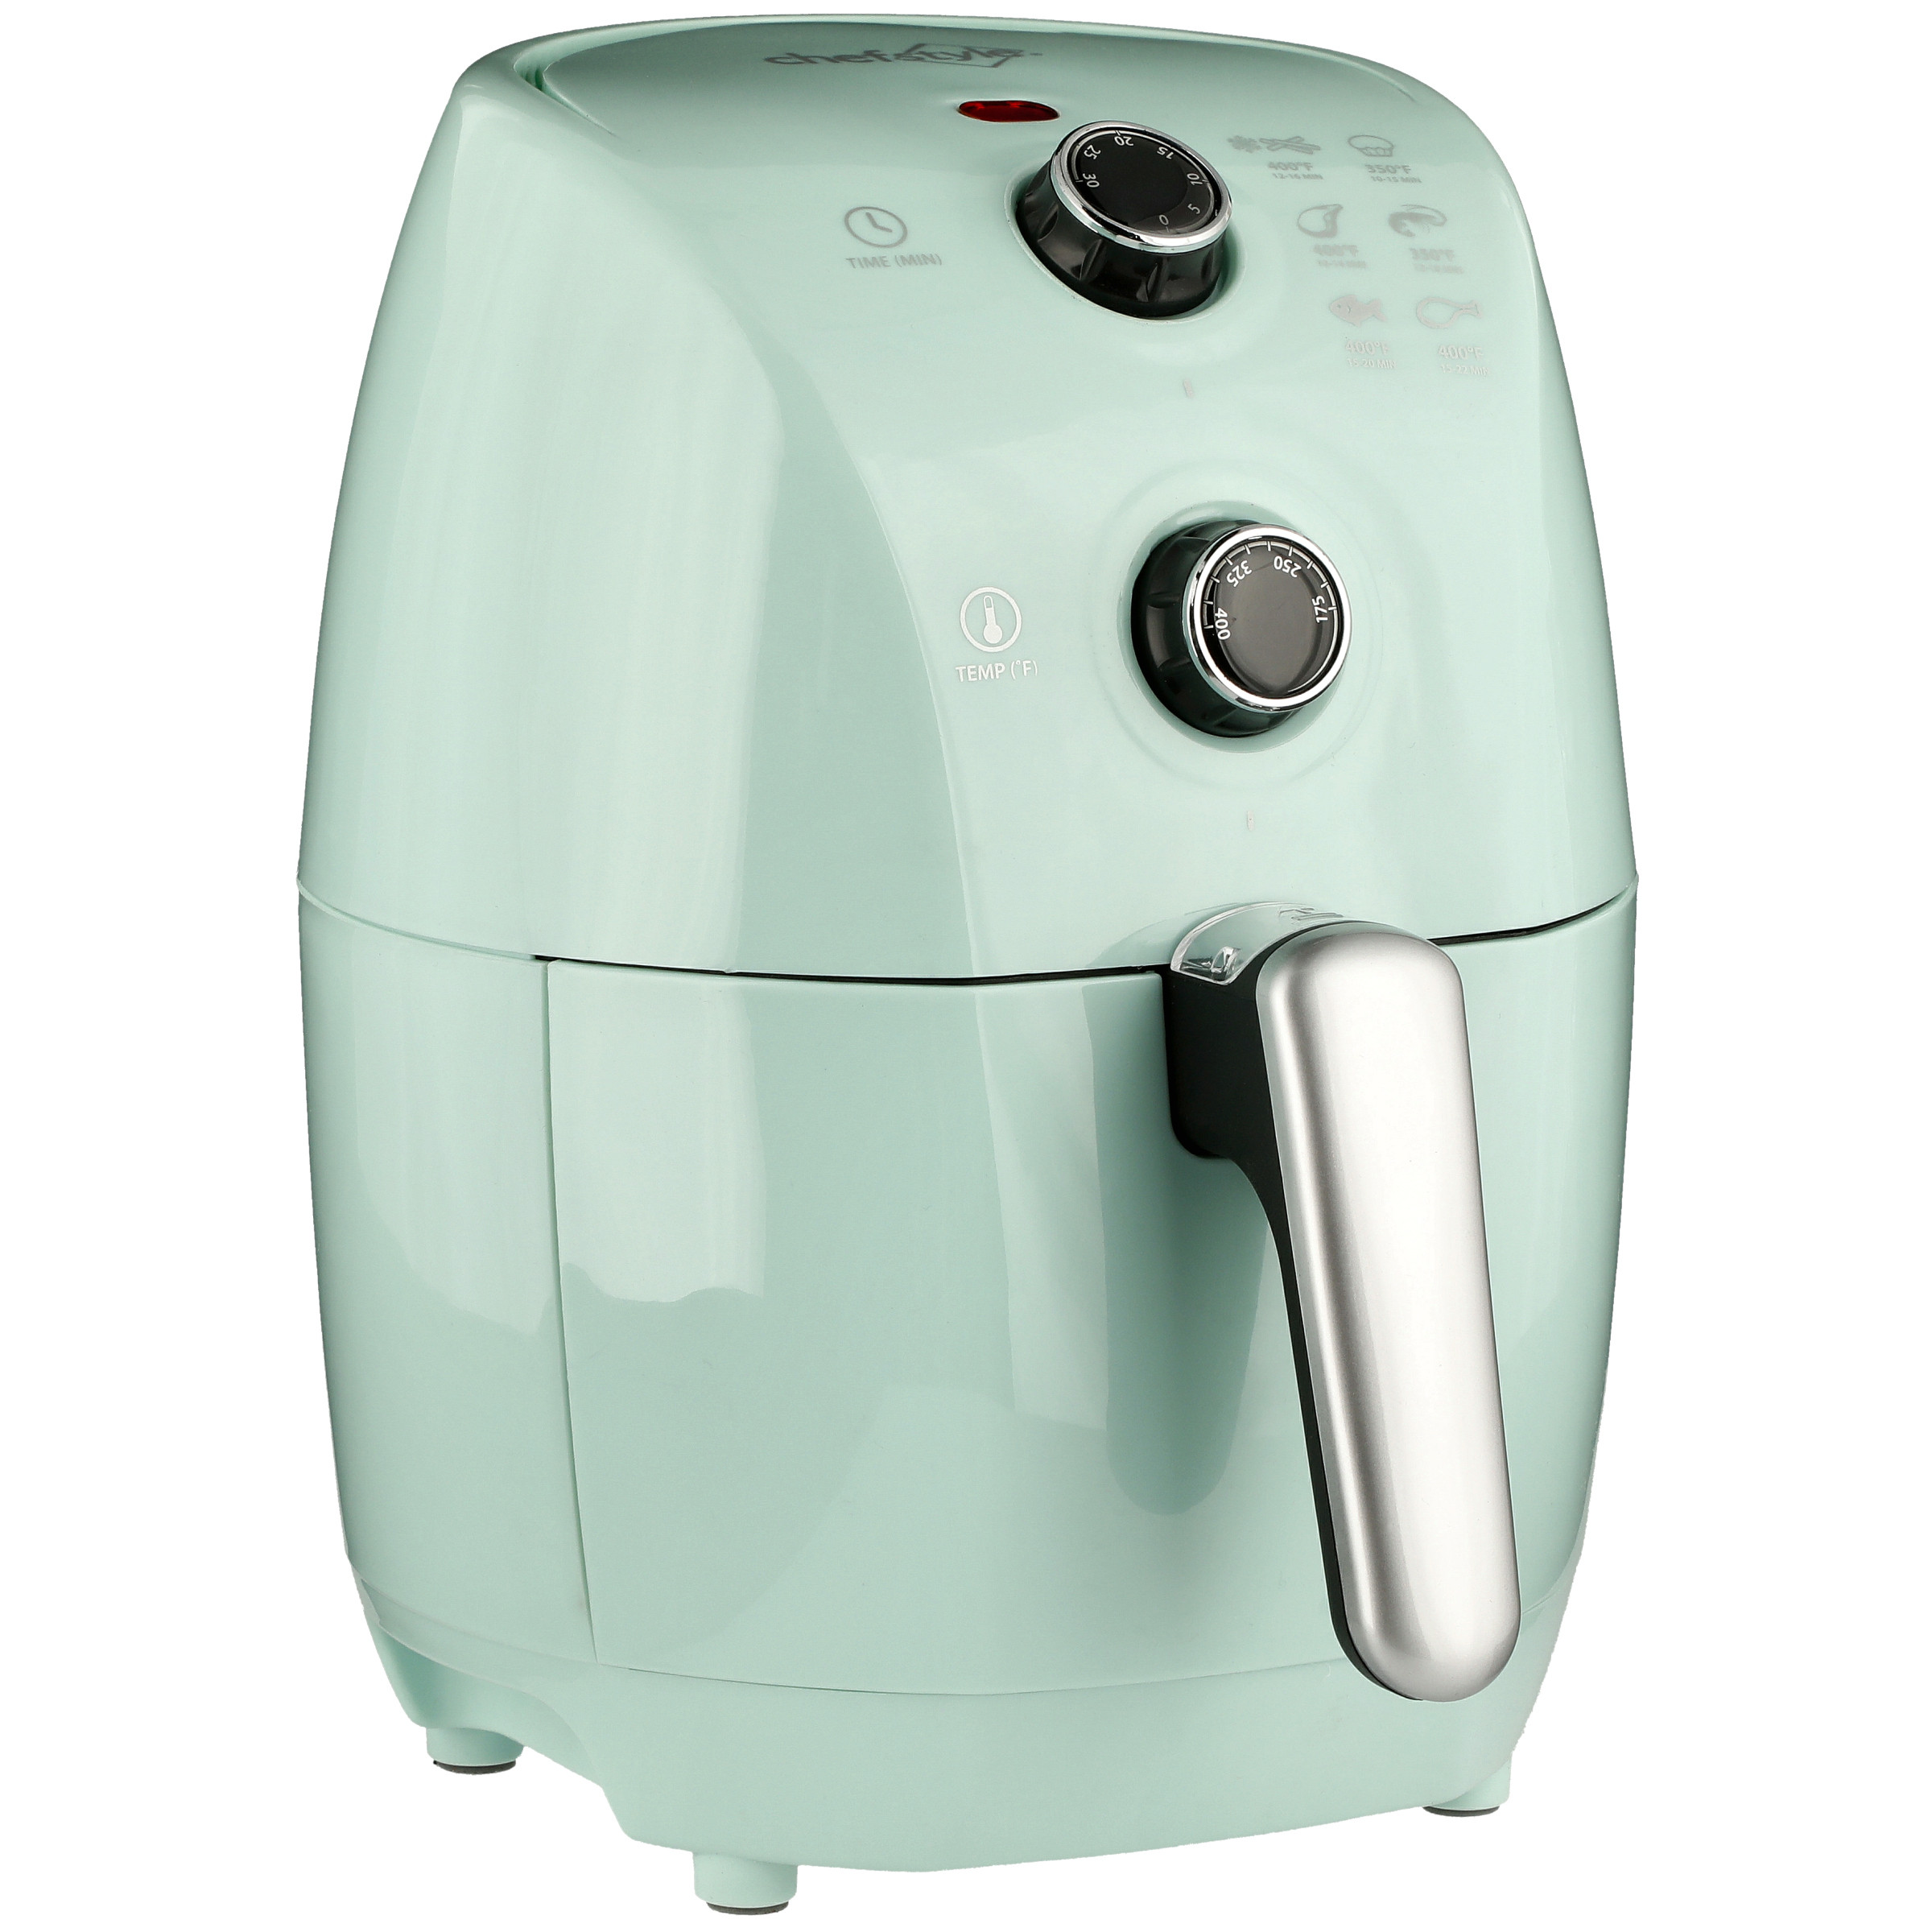 chefstyle Mint Air Fryer